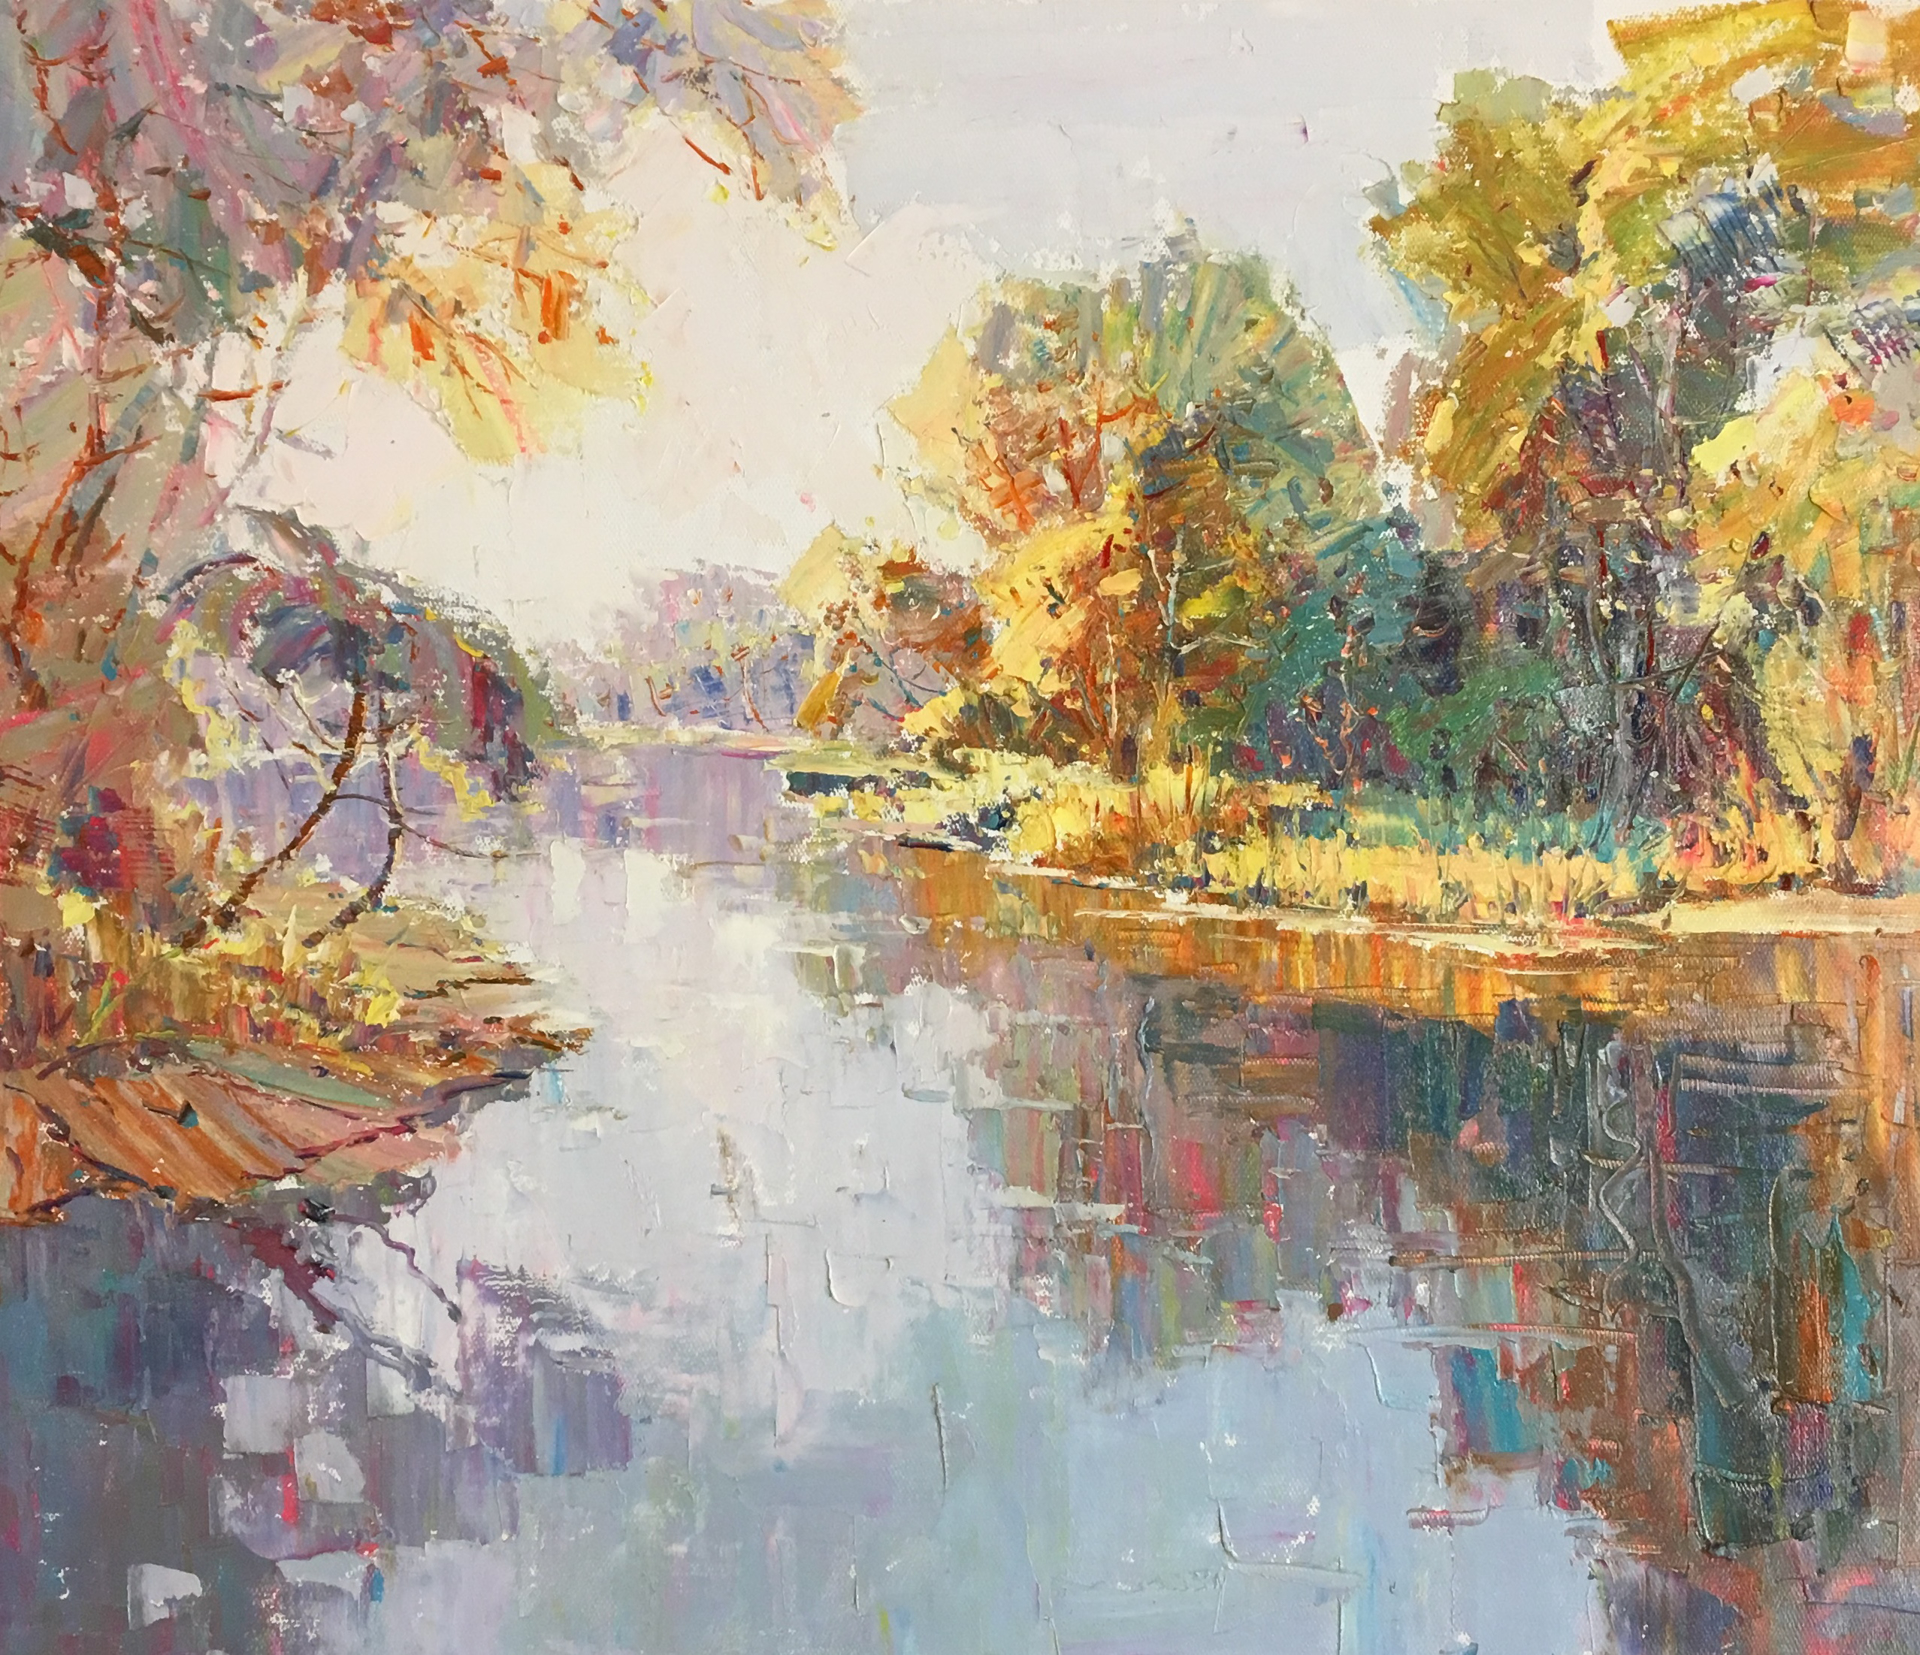 WINDING RIVER THROUGH BRIGHT TREES by VARIOUS WORKS